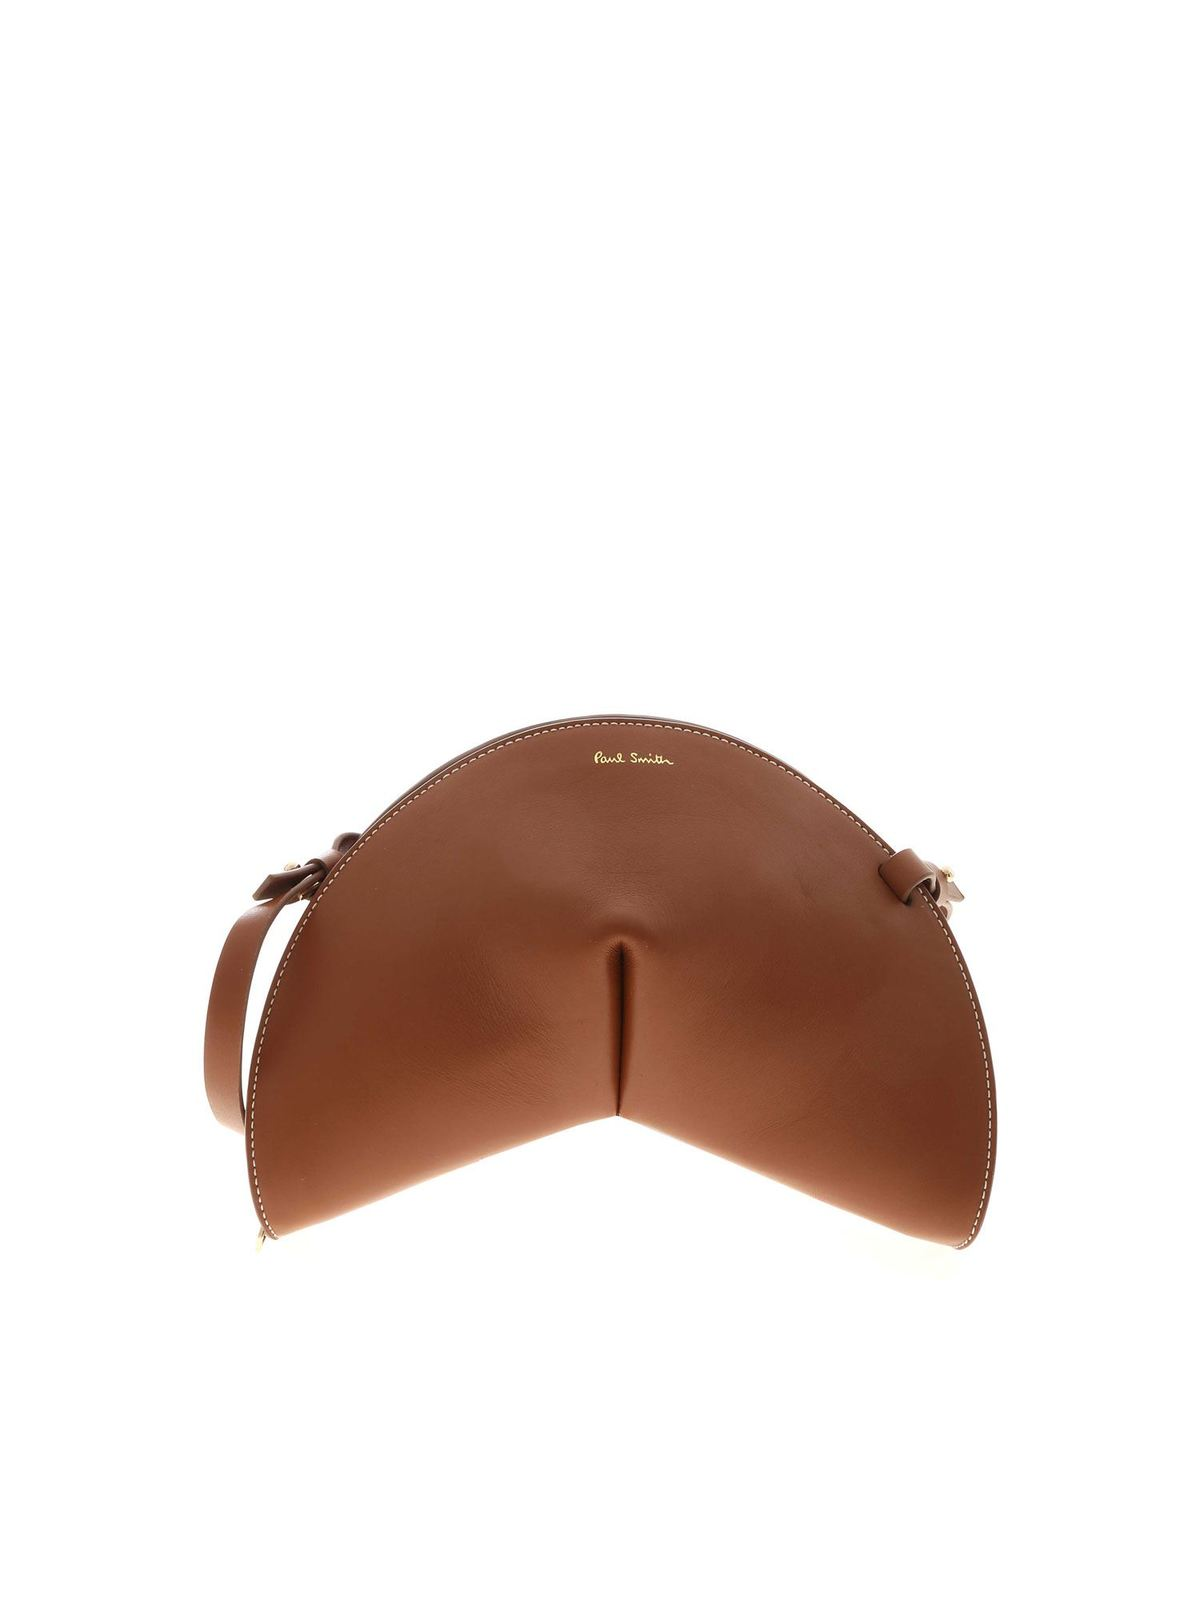 Paul Smith HALF MOON SHOULDER BAG IN BROWN